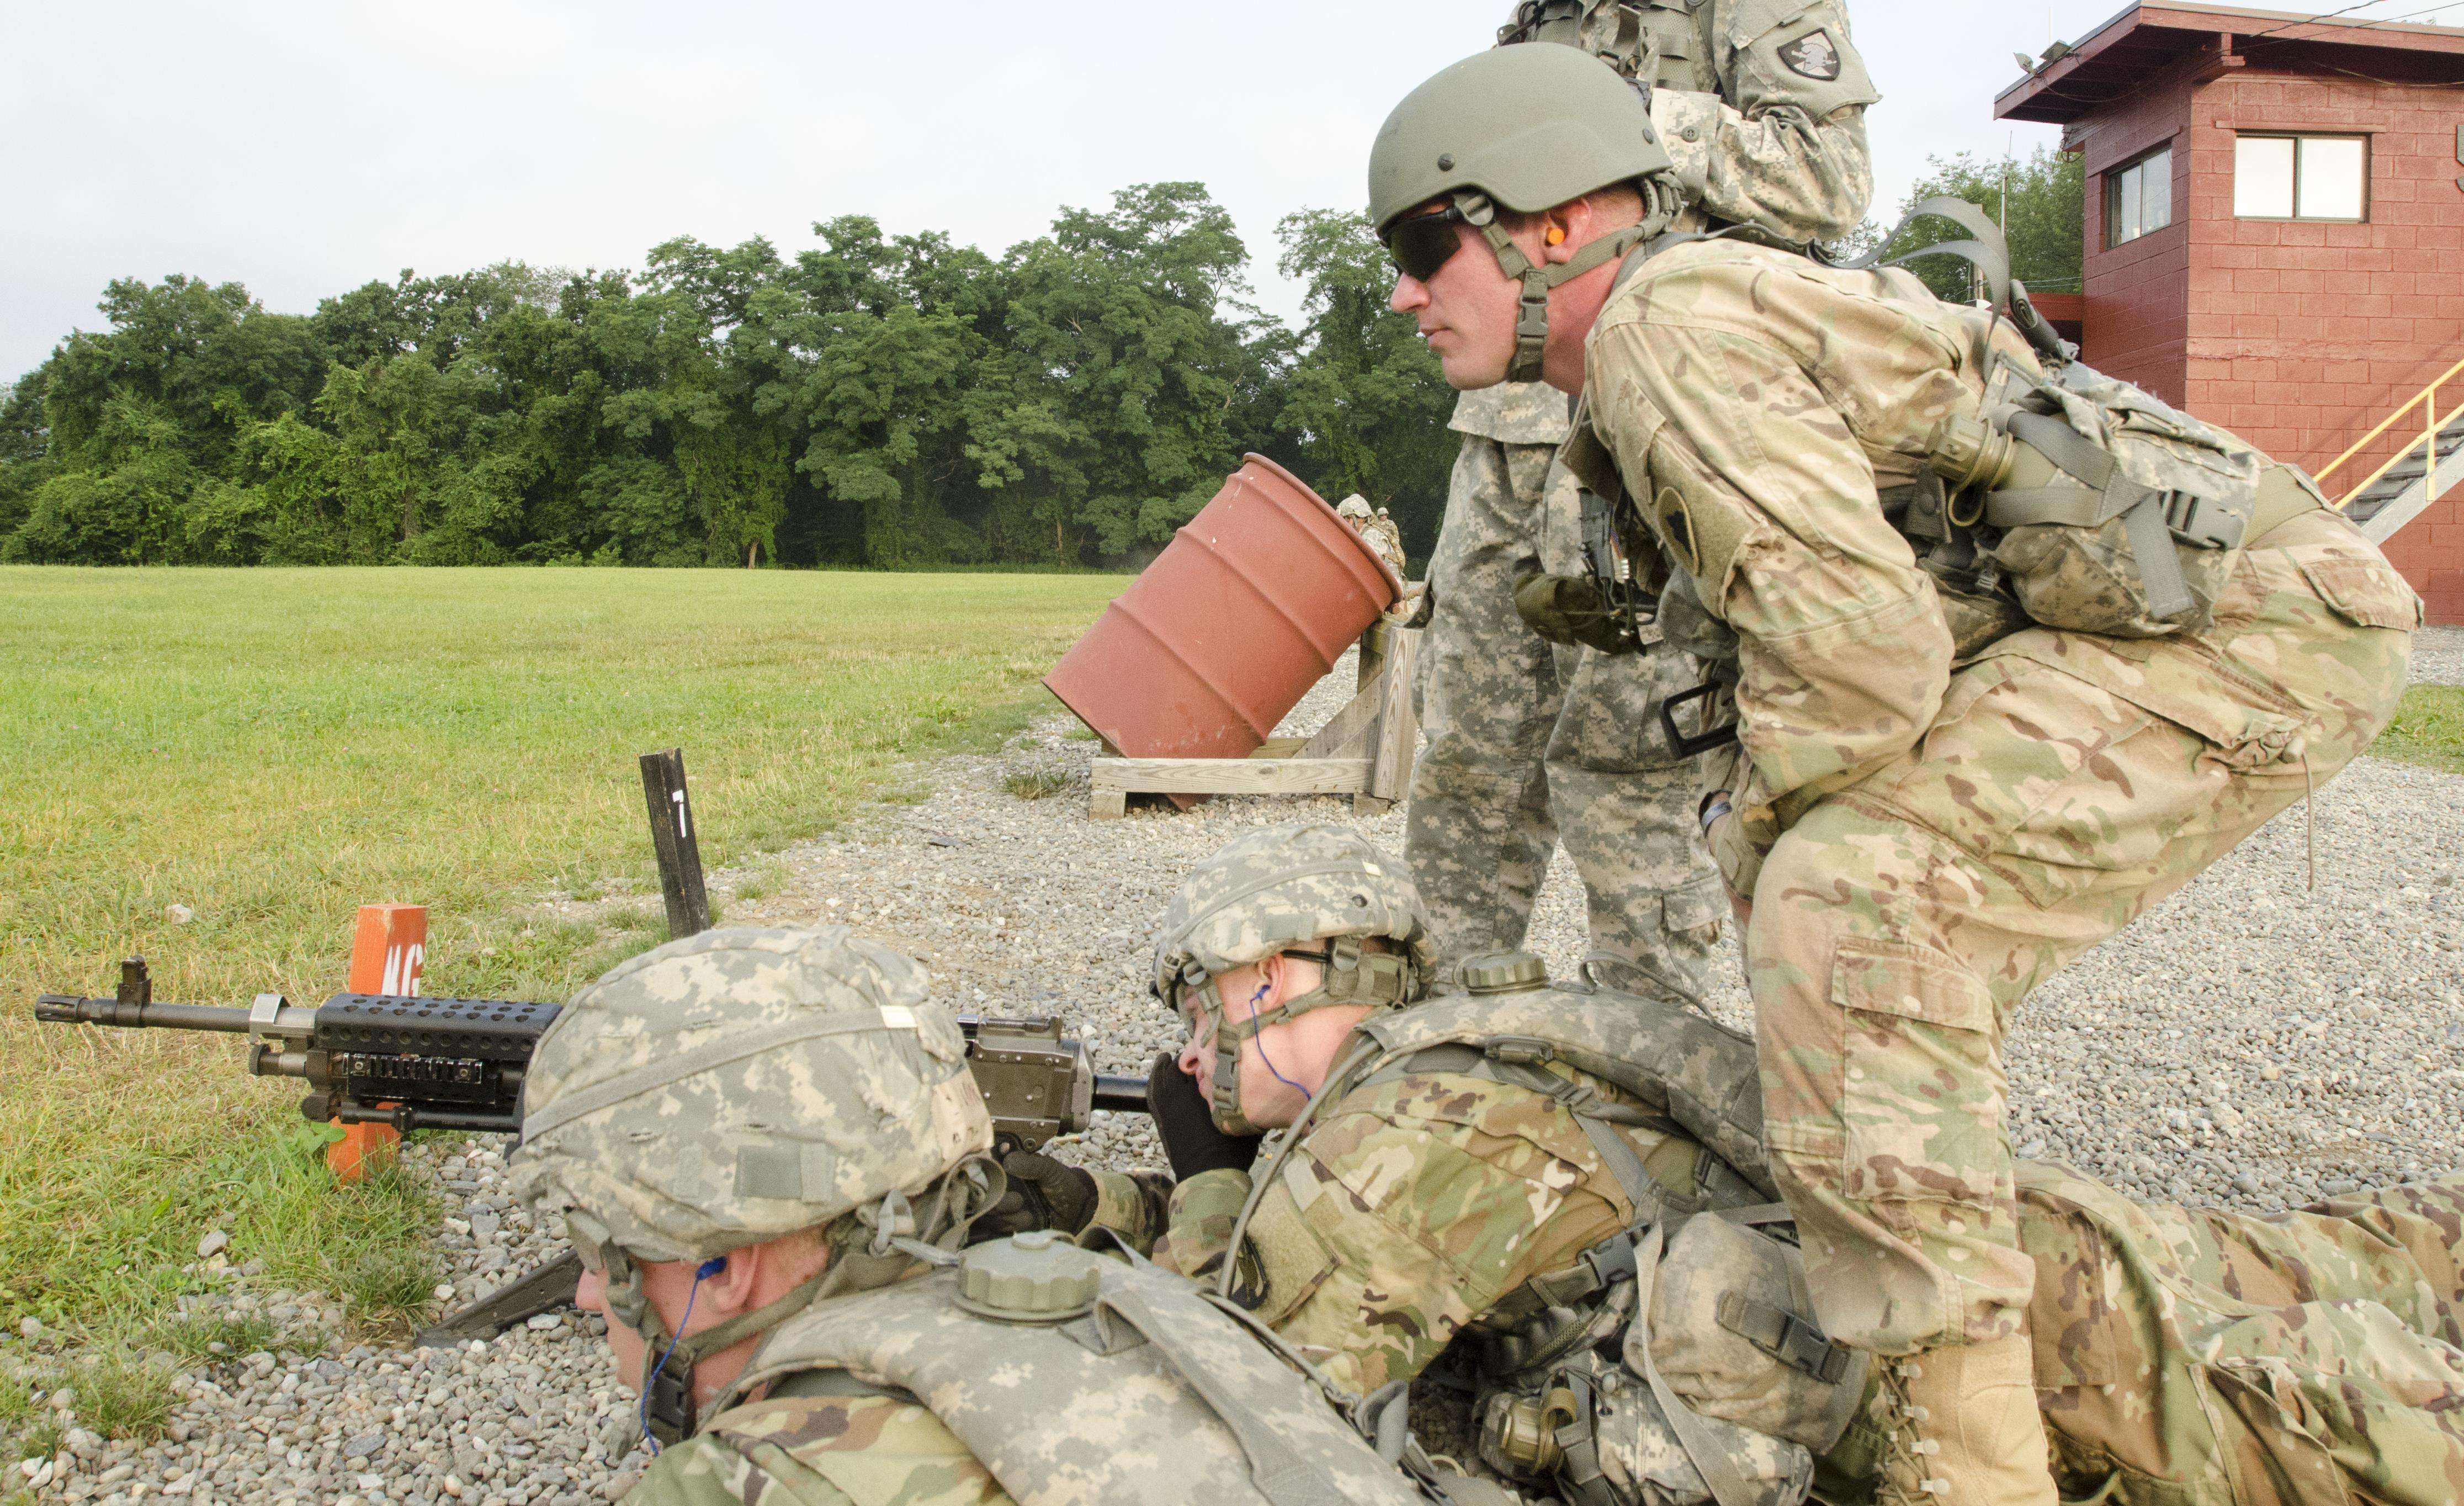 army military bearing essay Fm 1, one of the army's two capstone manuals, states that the army exists to serve the american people, protect enduring national interests, and fulfill the nation's military responsibilities.